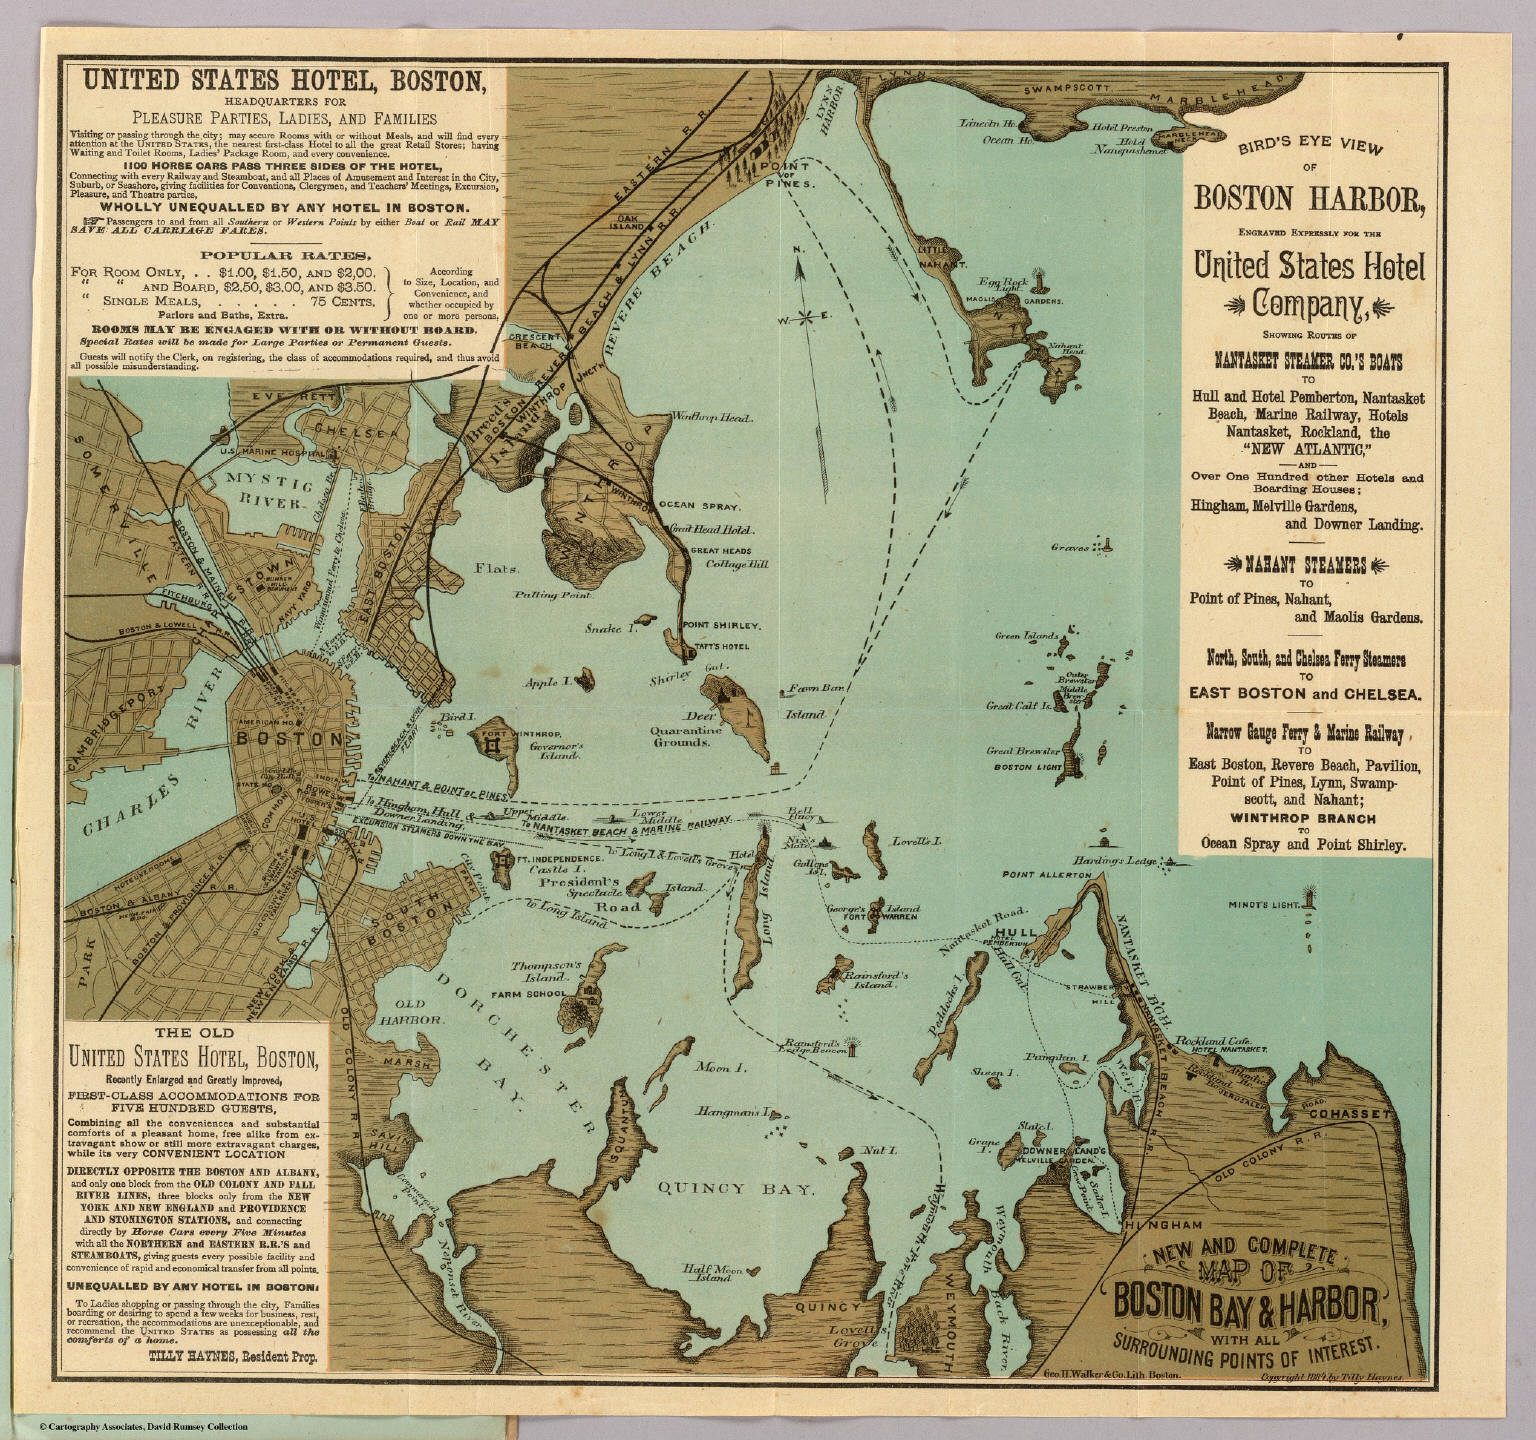 Boston Harbor Map Boston Harbor. / Haynes, Tilly / 1884 Boston Harbor Map